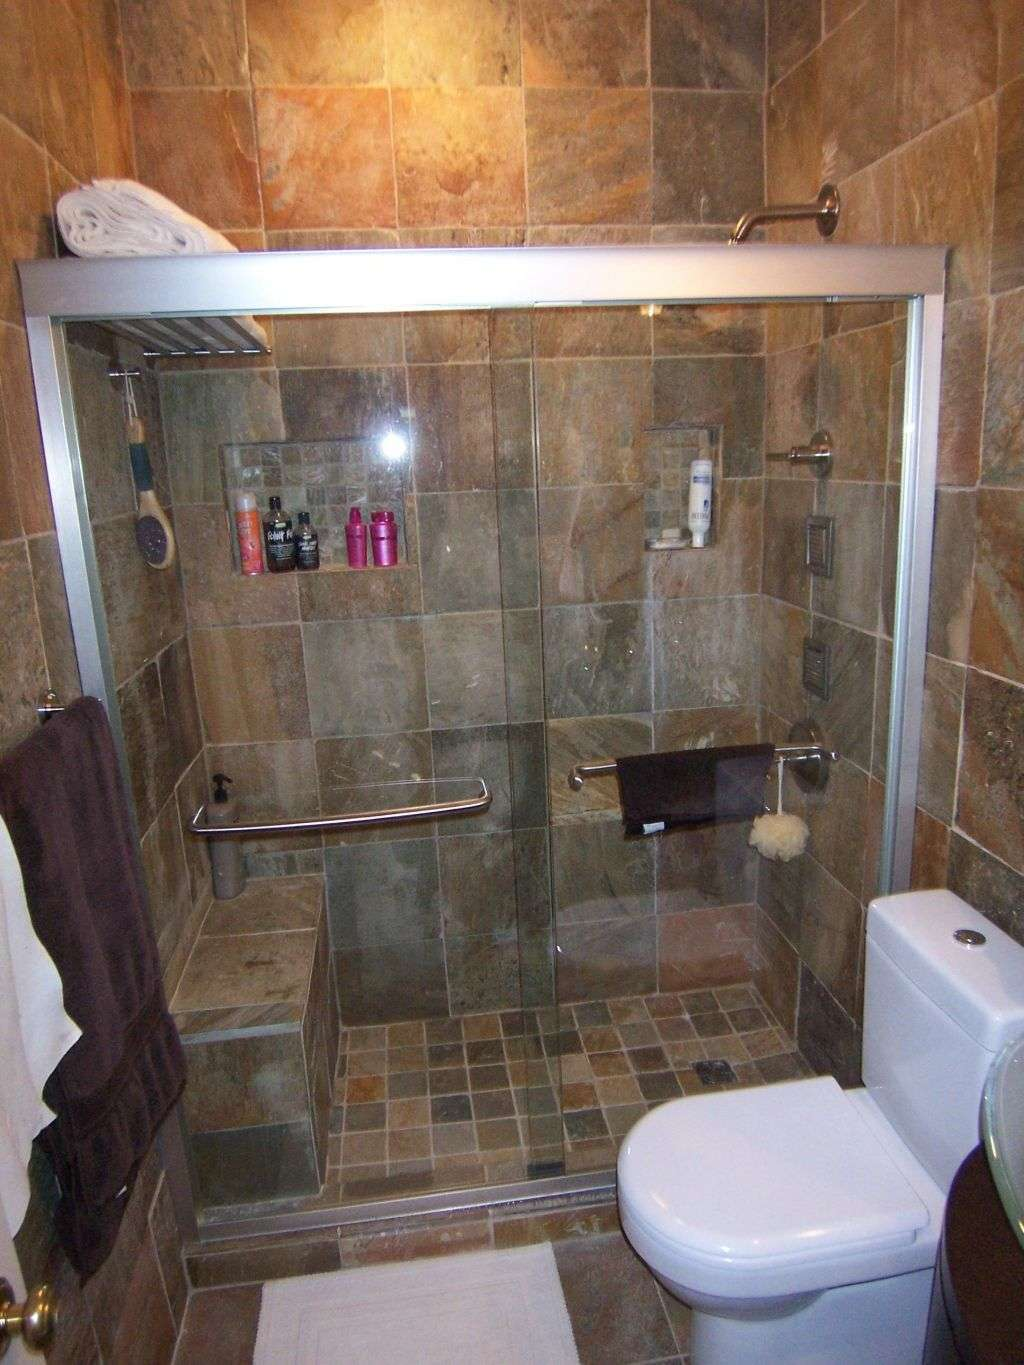 bathroom-fancy-design-ideas-using-white-toilets-and-rectangular-glass-shower-doors-also-with-silver-towel-bars-and-brown-tile-backsplash-endearing-bathrooms-look-using-shower-designs-with-bench